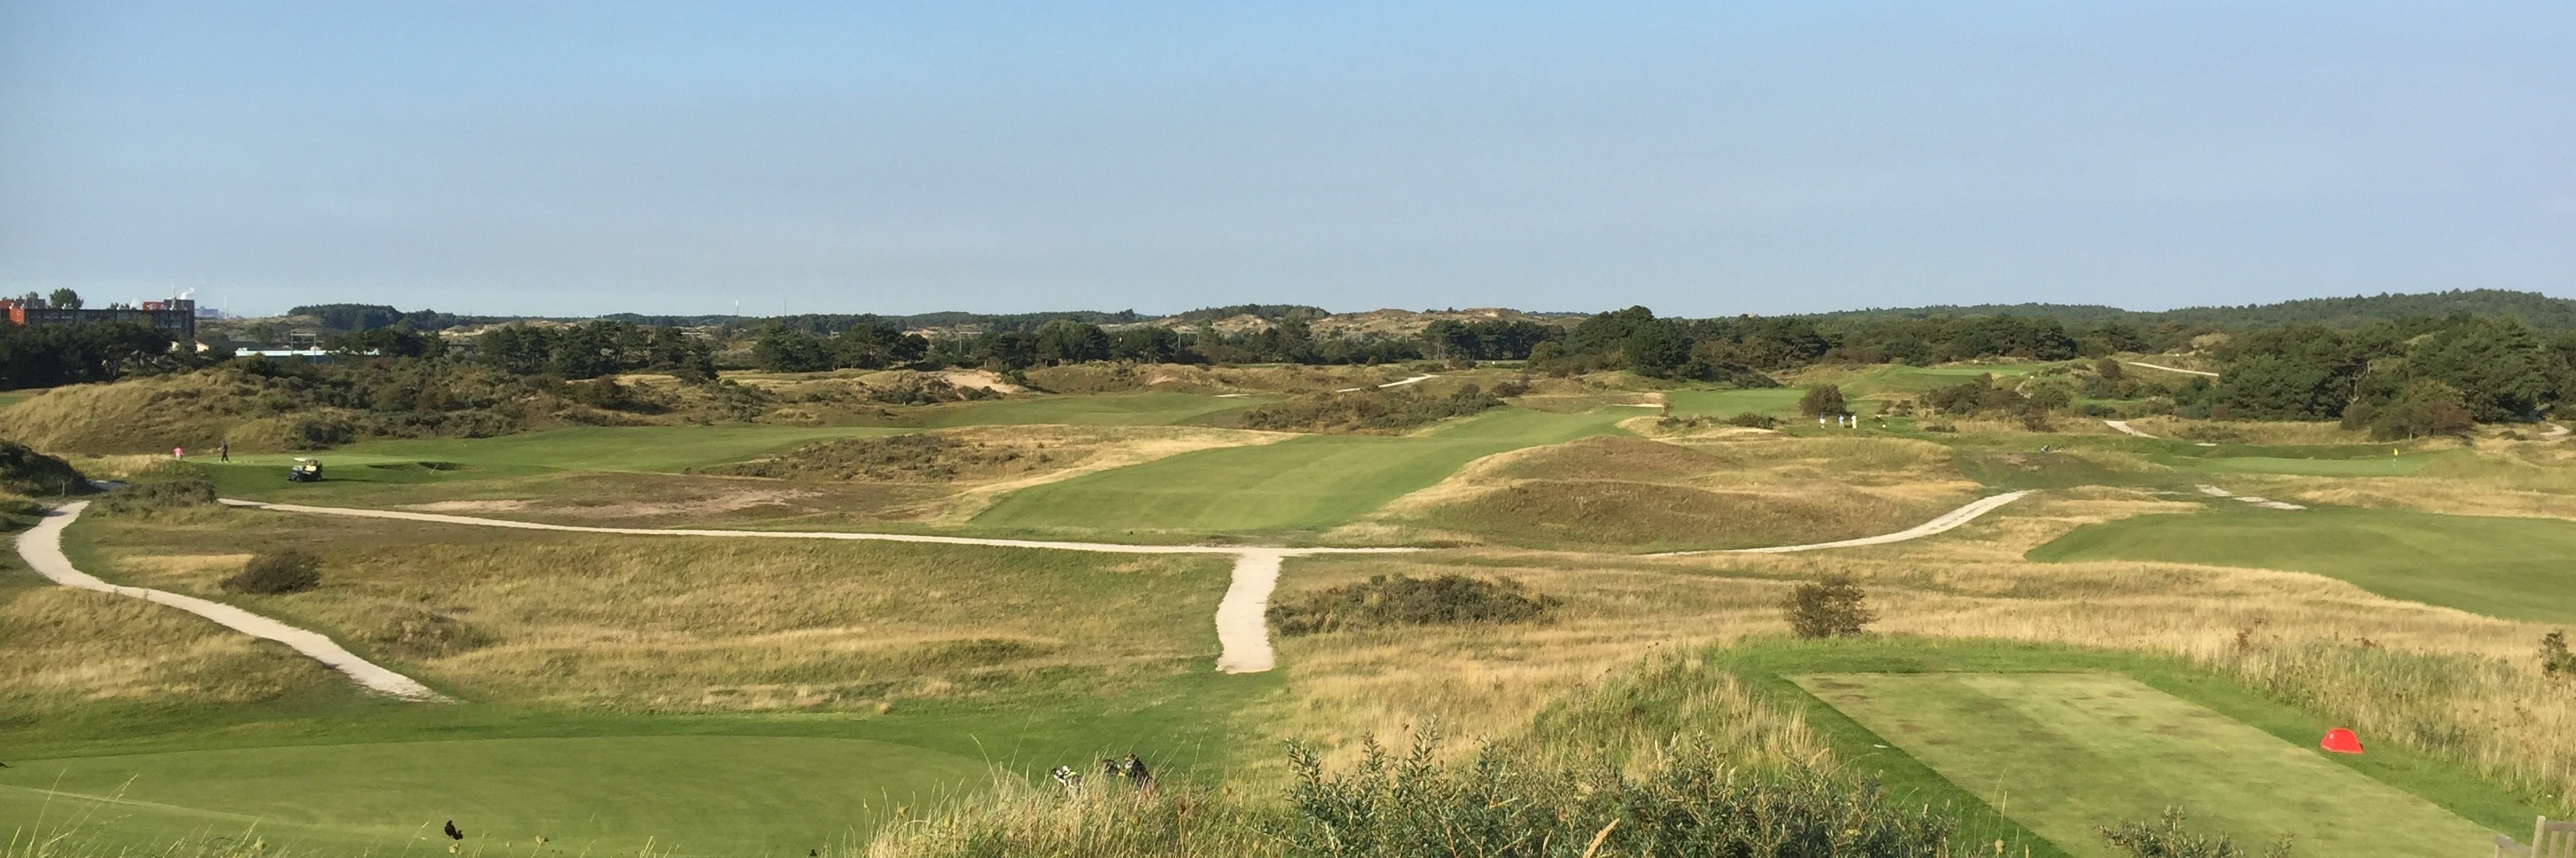 Classics links and heathland golf of holland by authentic golf